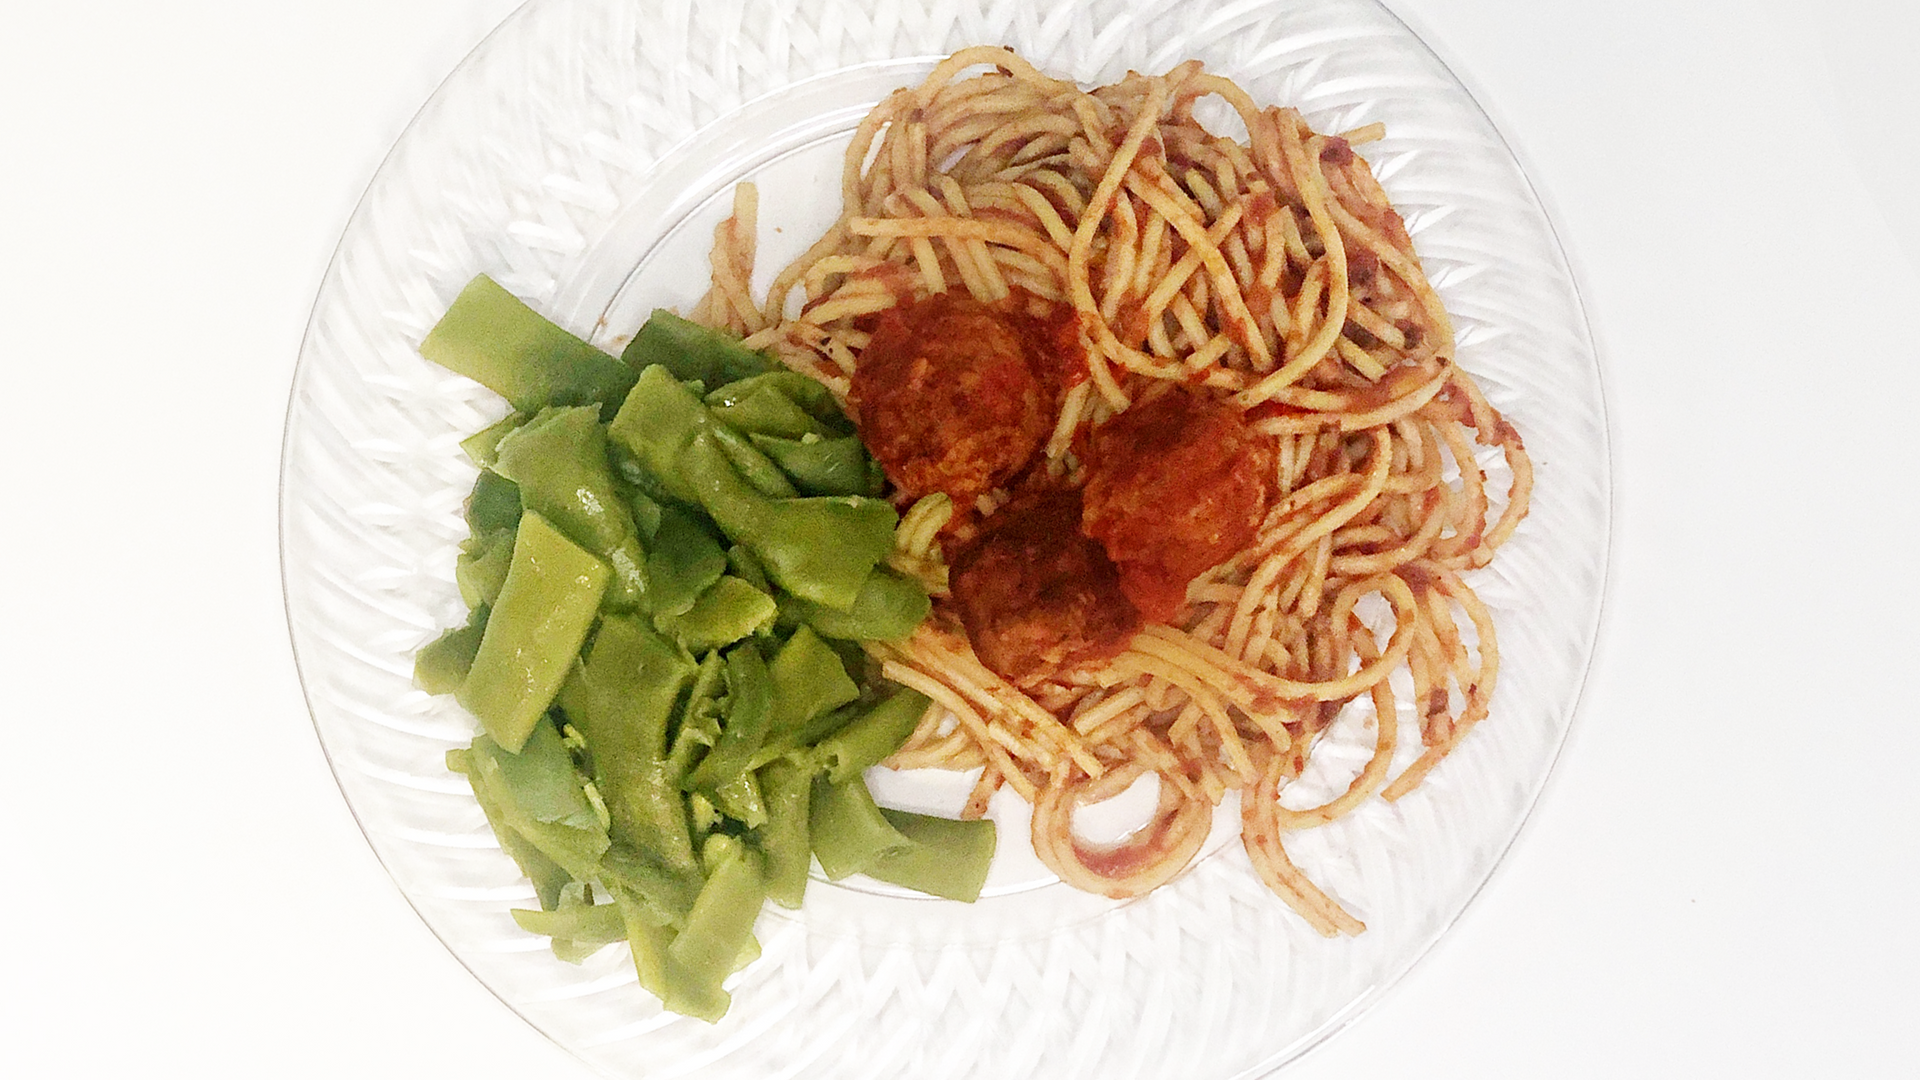 spaghetti with meat balls with a side of green beans